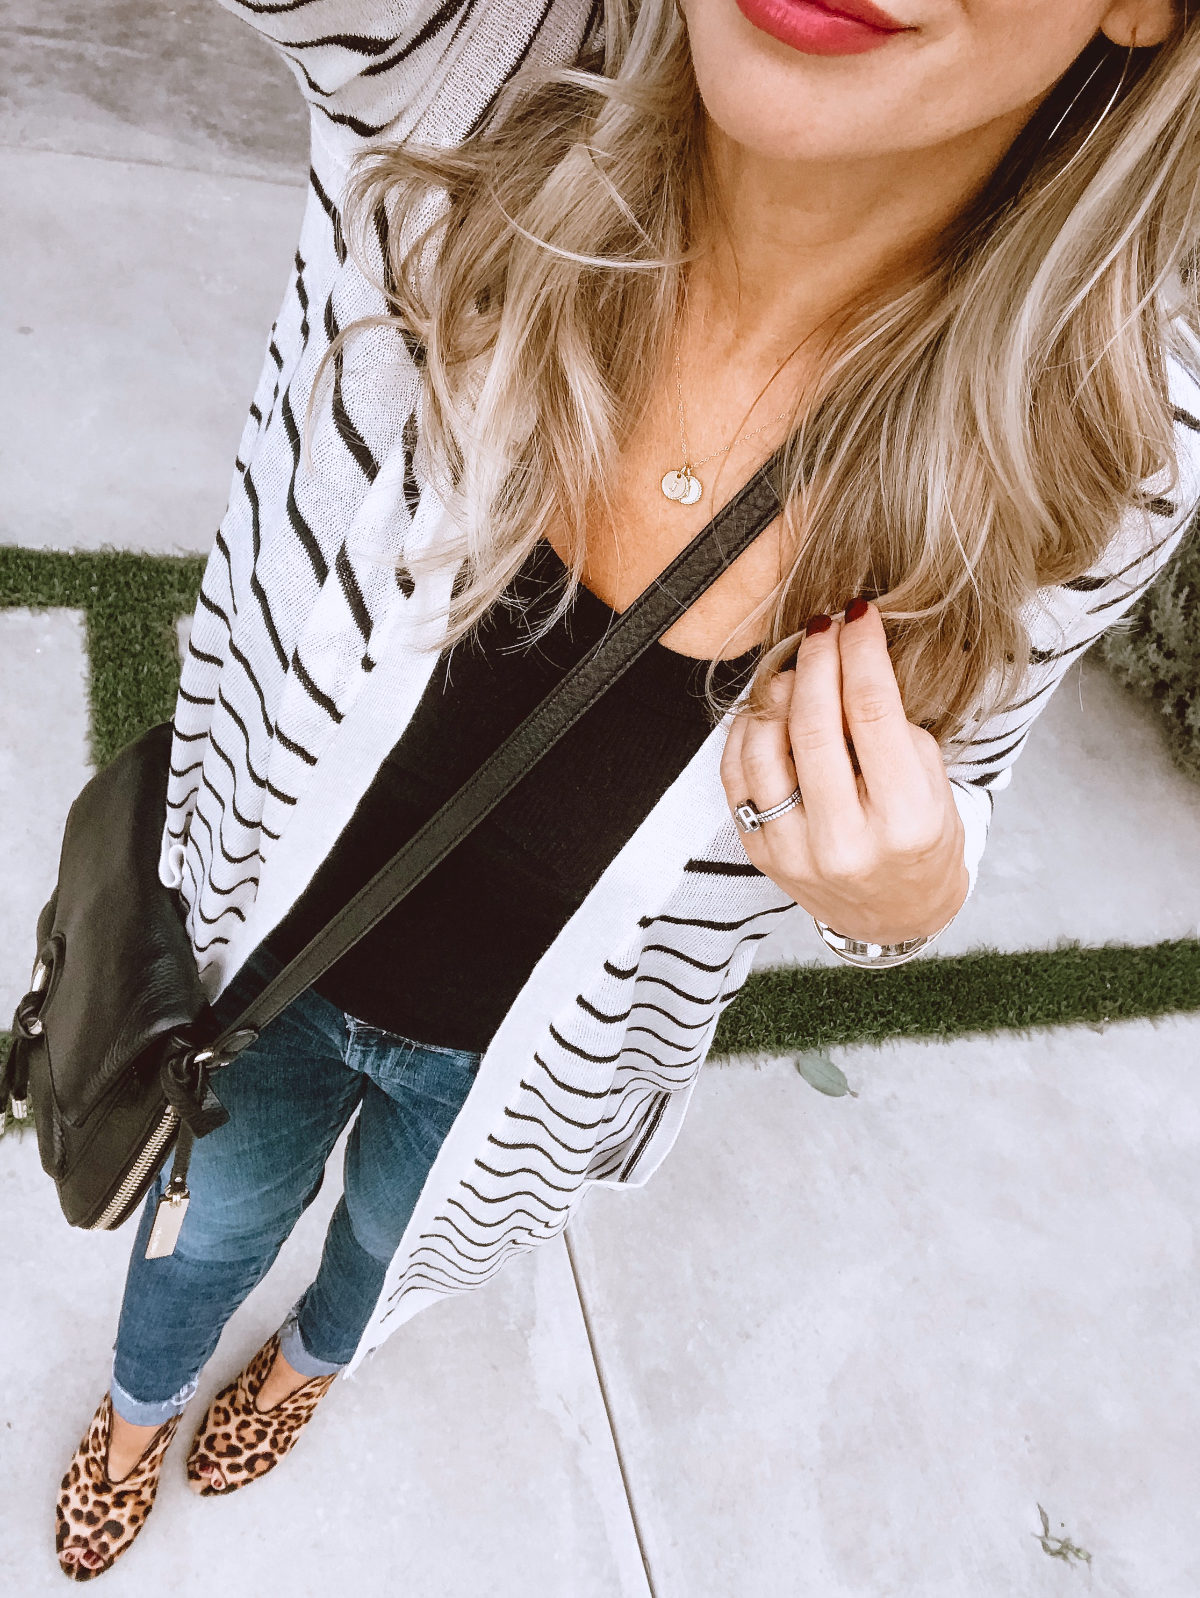 Long striped cardigan and skinny jeans with leopard booties